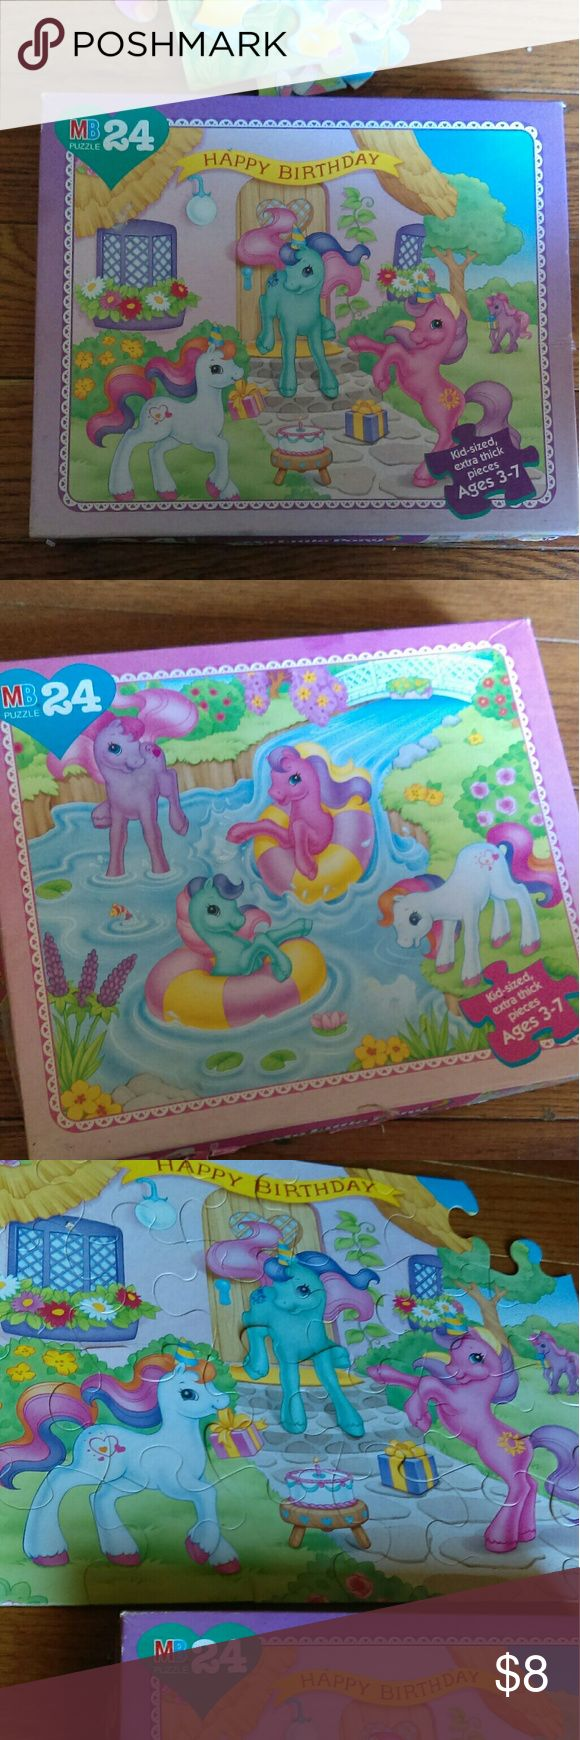 Vintage my little pony Puzzles one is missing a corner piece and boxes are in fragile shape but still a great collection to have Disney Other